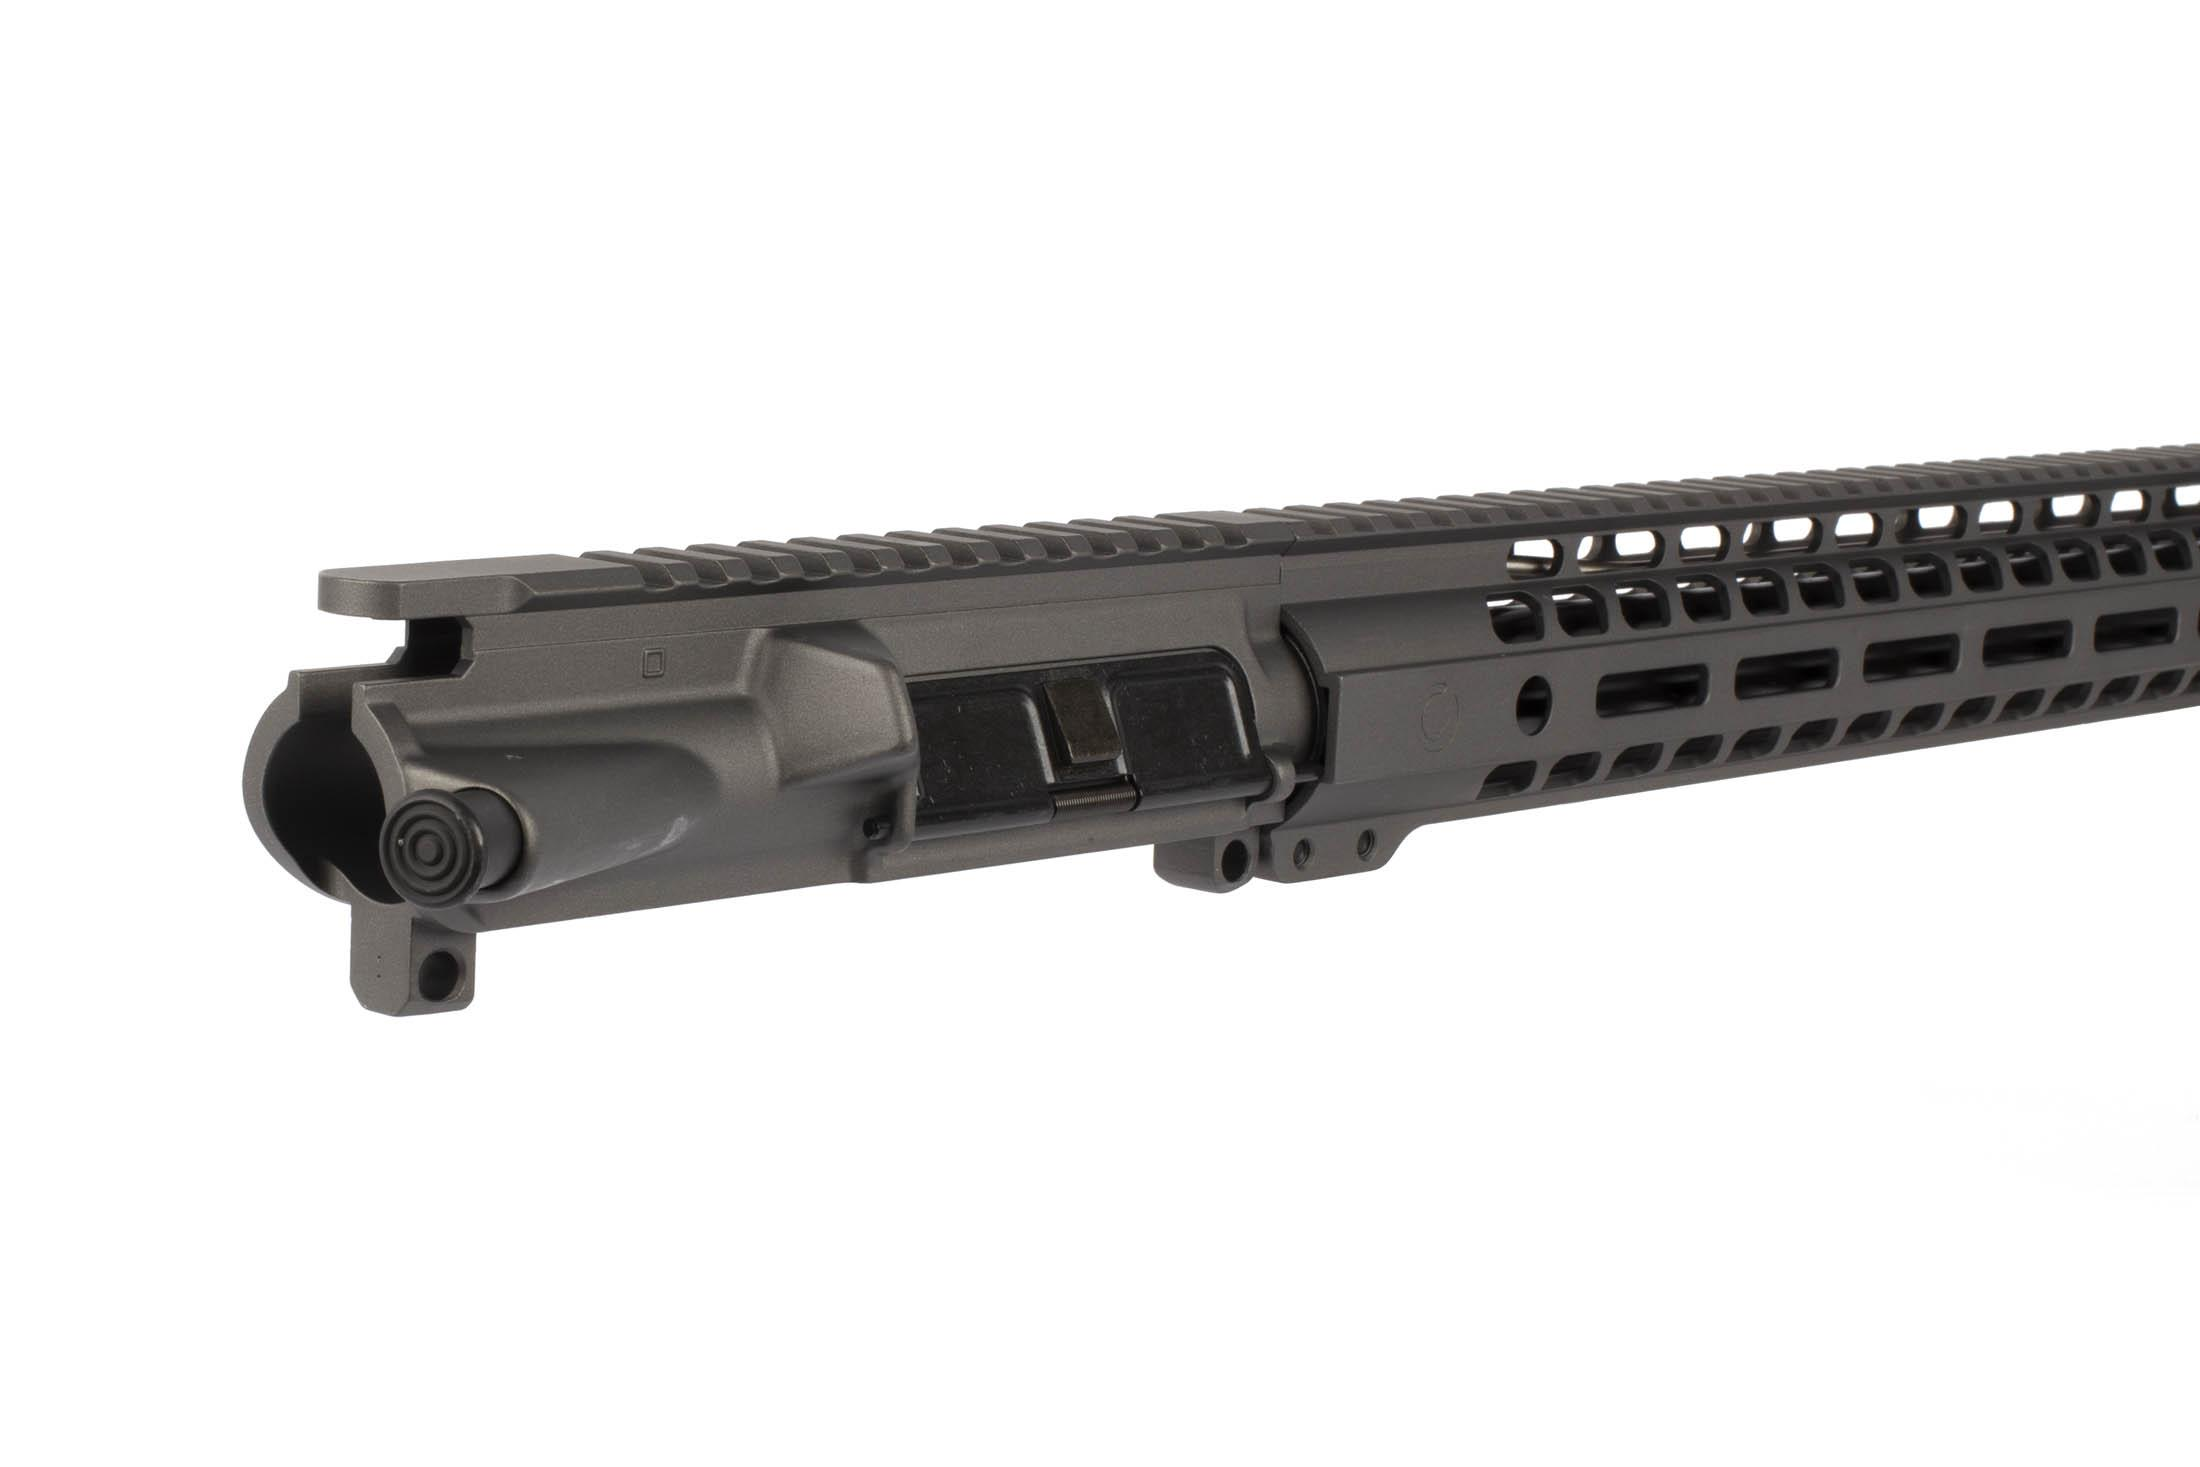 The Ghost Firearms 24 6.5 Grendel Elite Upper Receiver includes a MIL-SPEC port door cover and forward assist